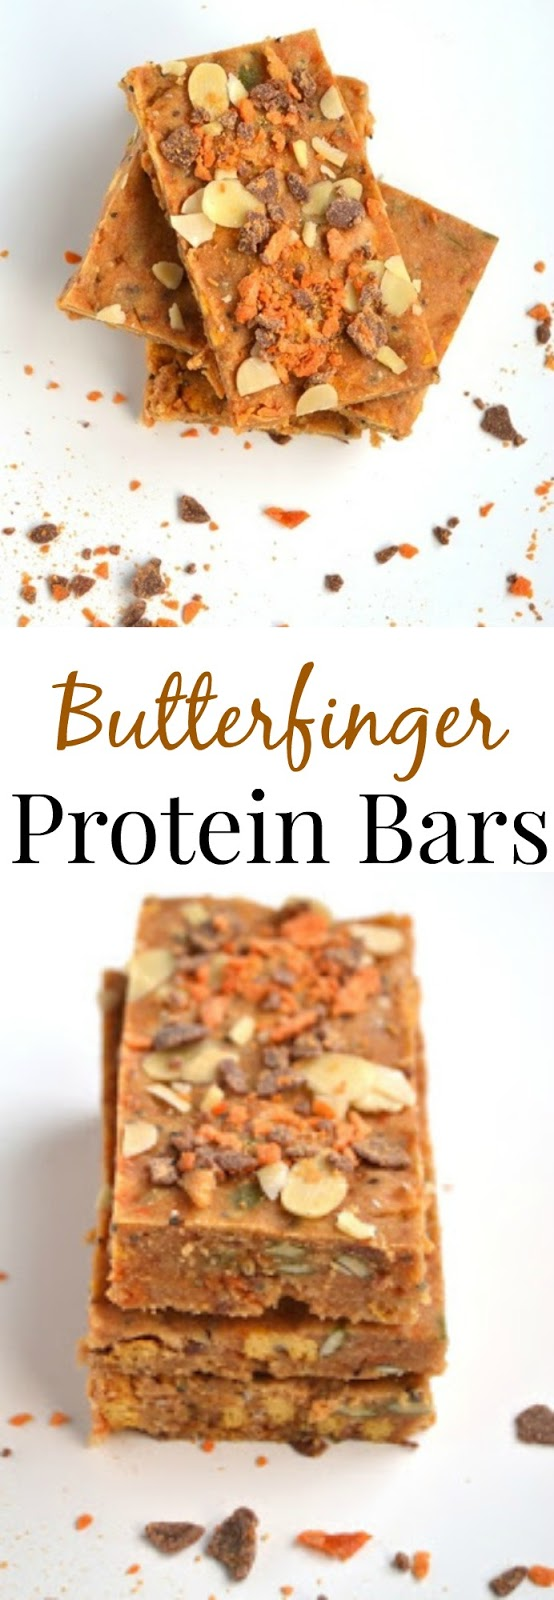 These Butterfinger Protein Bars are easy and only take 5 minutes to make. Super tasty and much more affordable than store-bought bars! www.nutritionistreviews.com